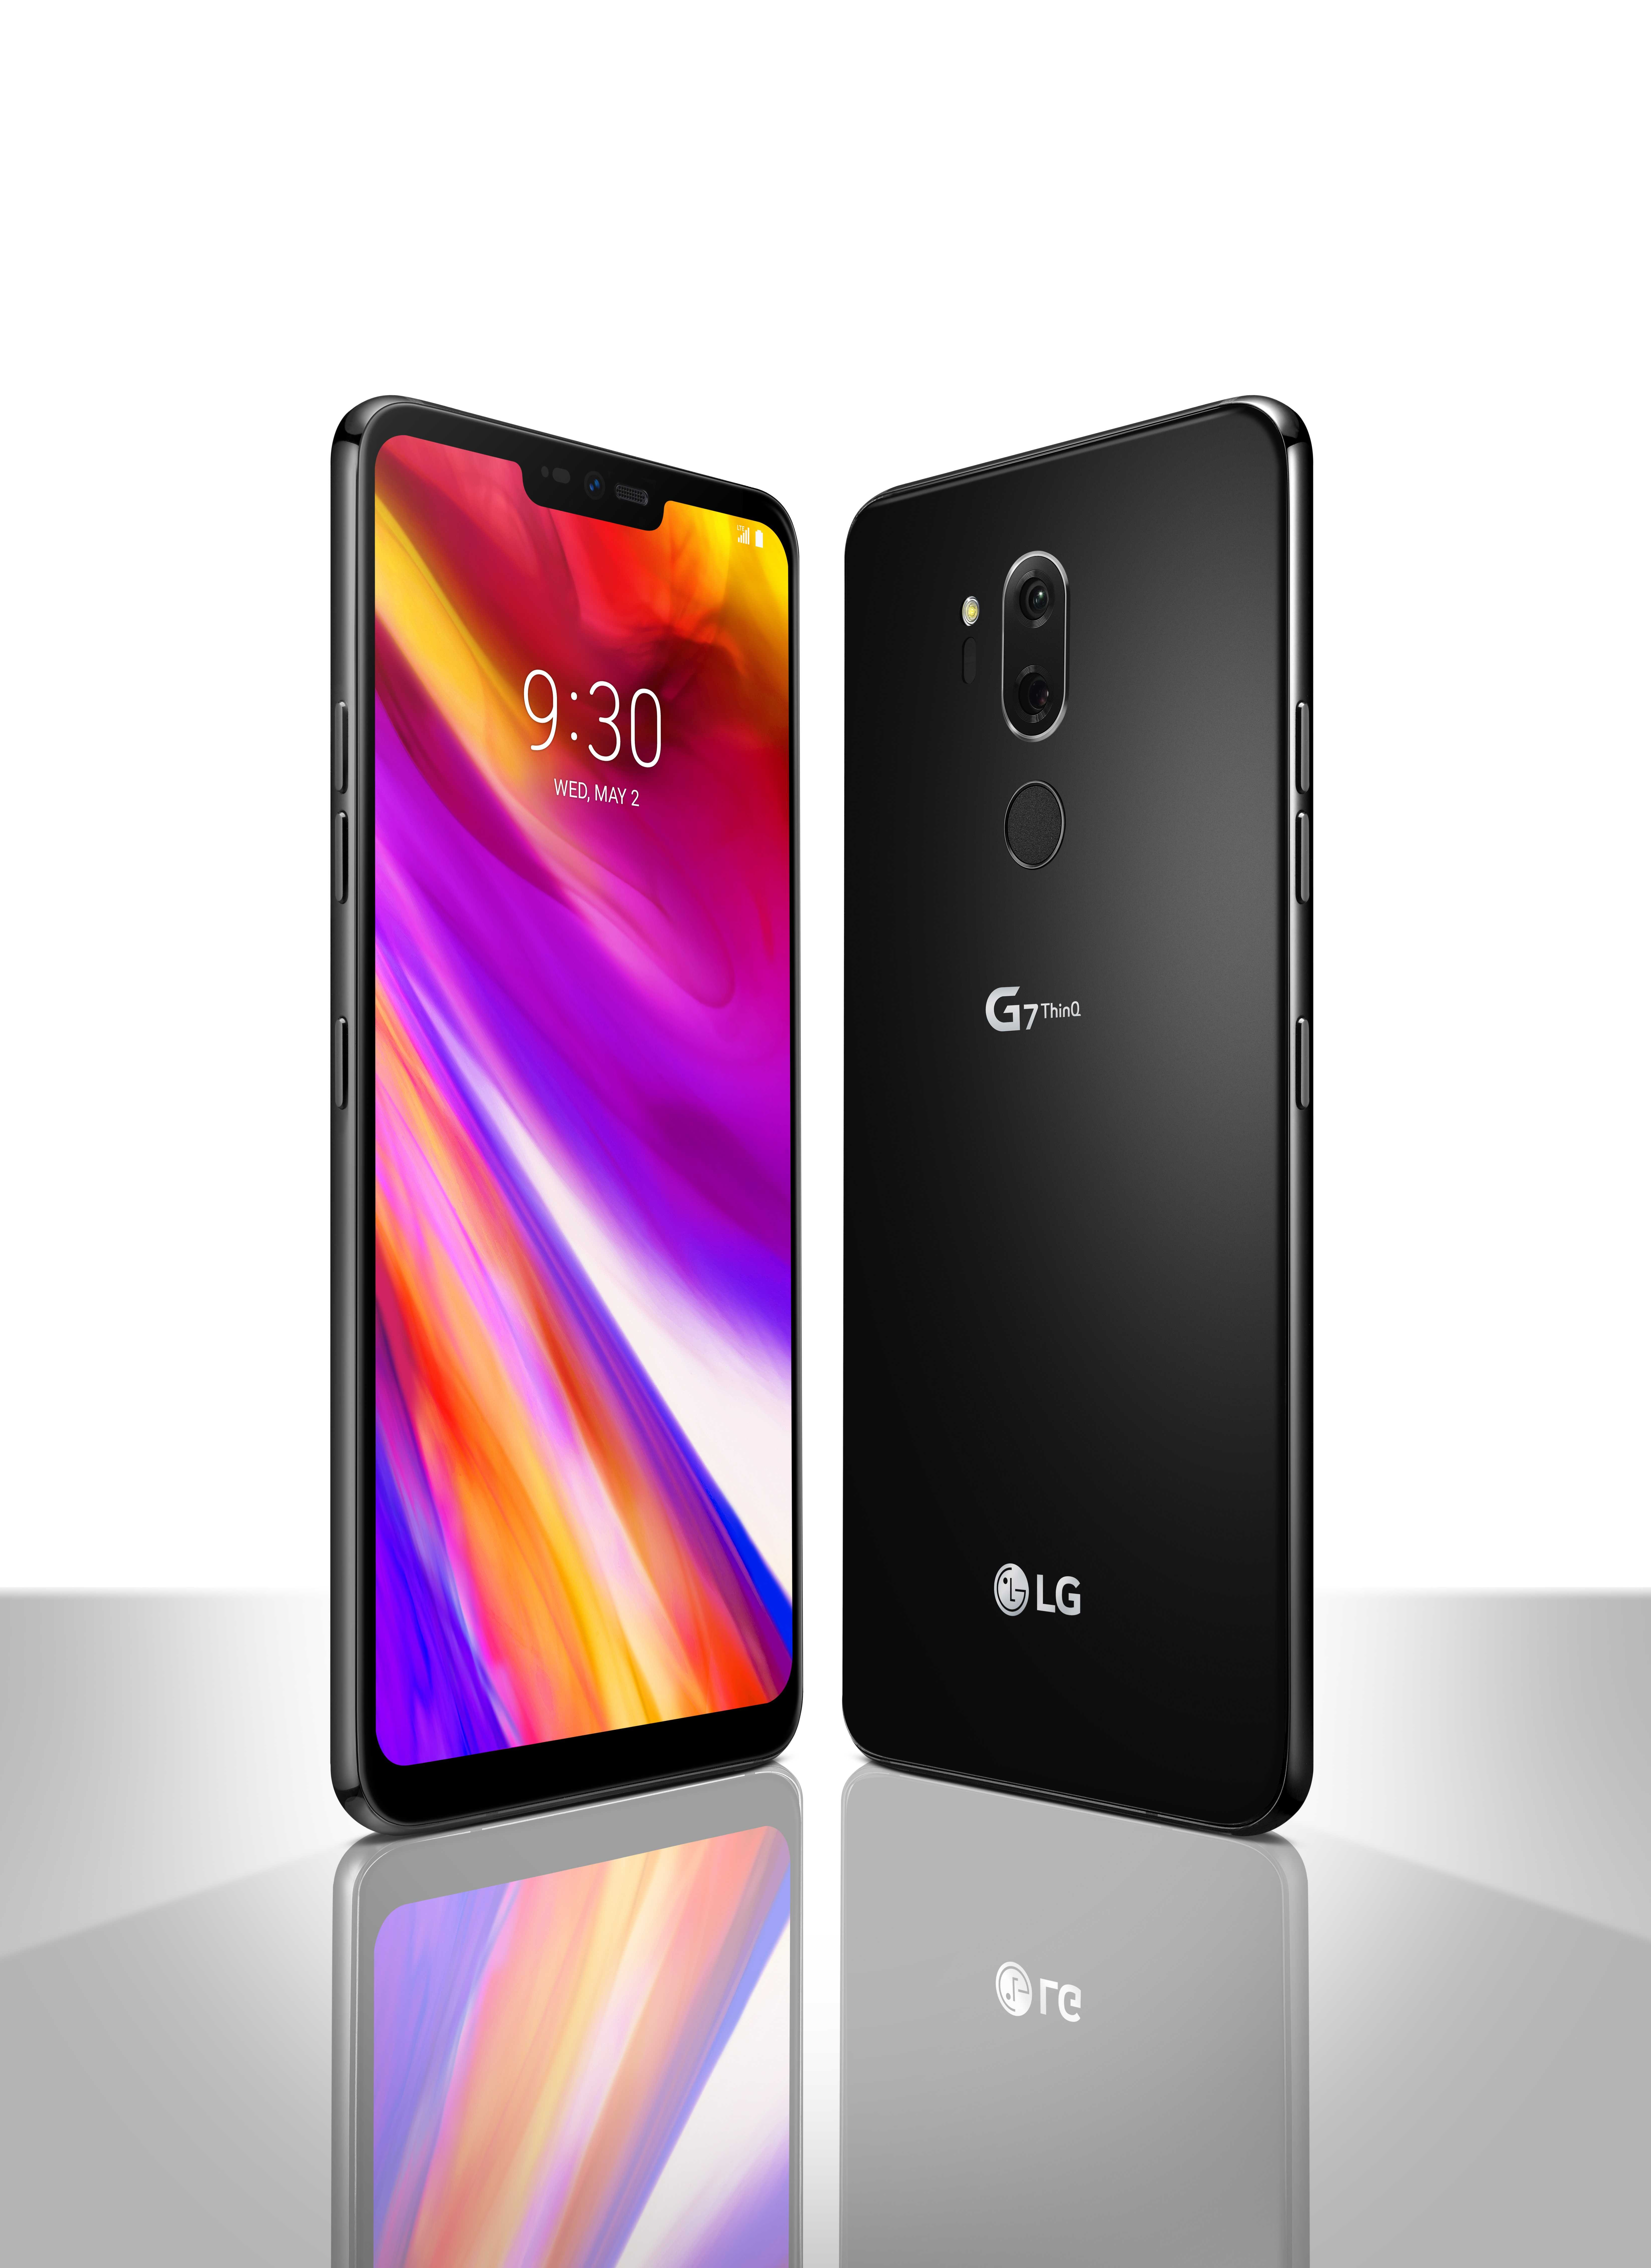 The front and rear view of the LG G7 ThinQ in New Aurora Black, side-by-side